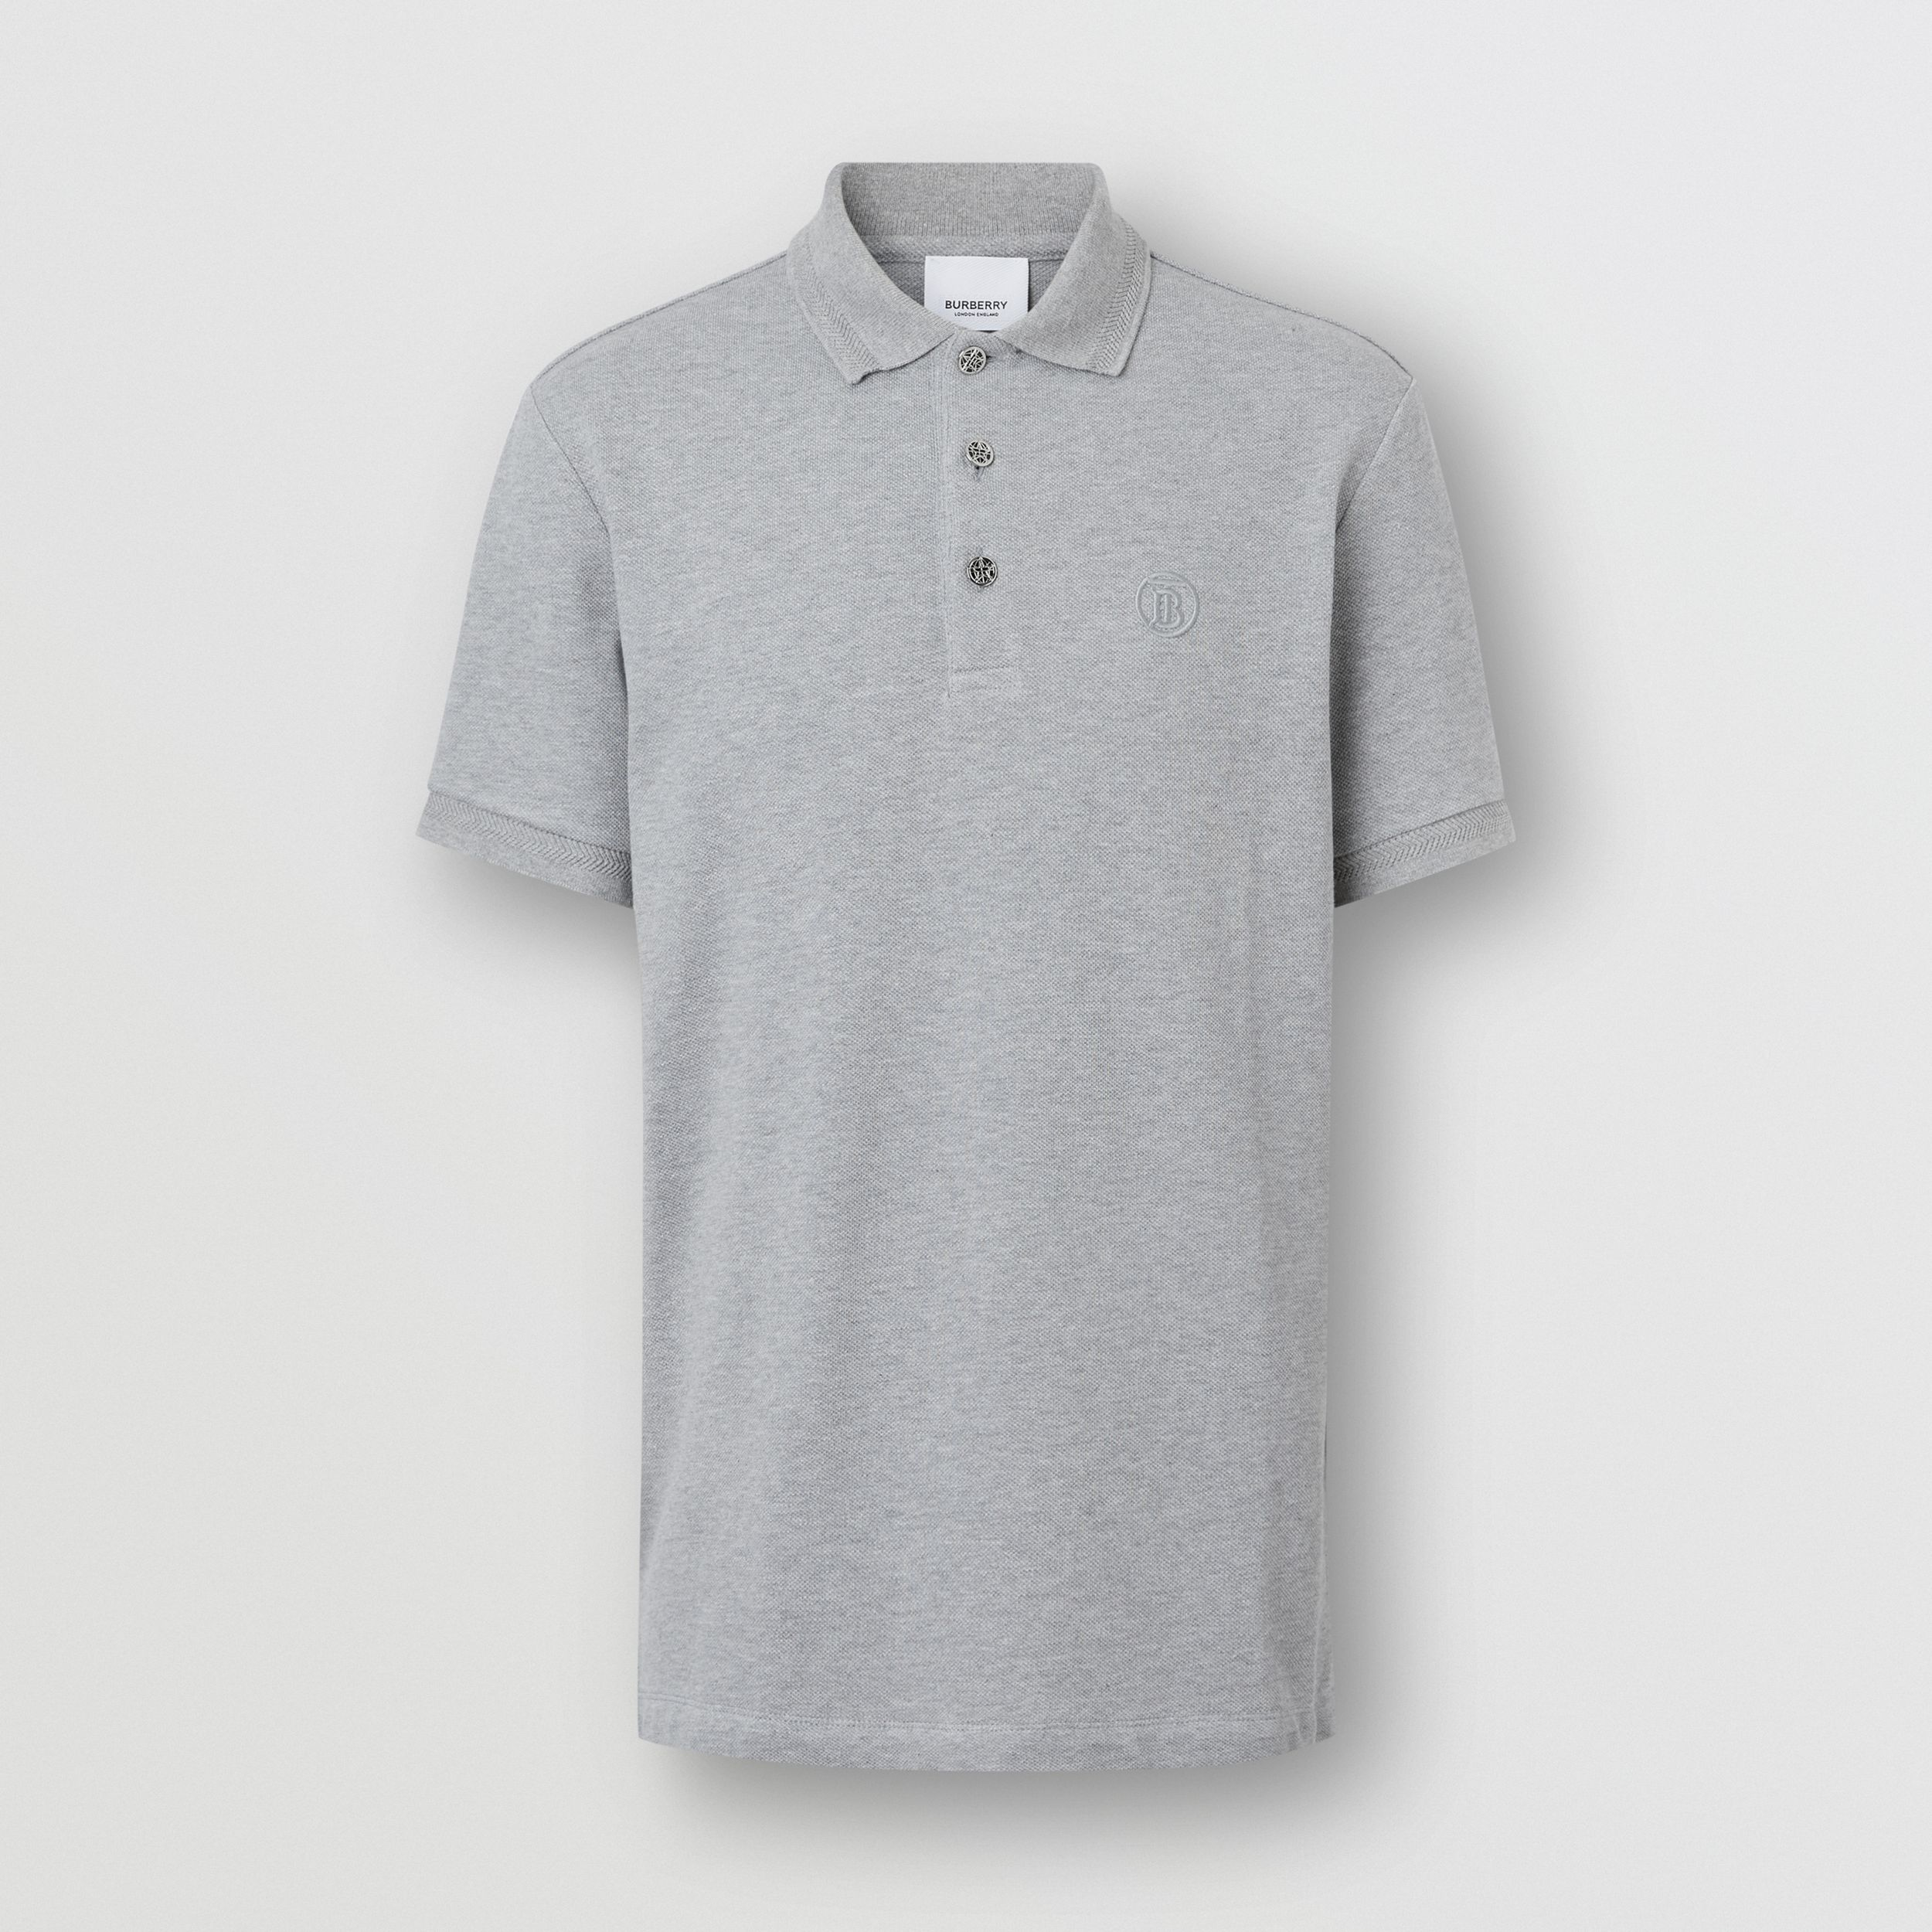 Button Detail Cotton Piqué Polo Shirt in Pale Grey Melange - Men | Burberry - 4